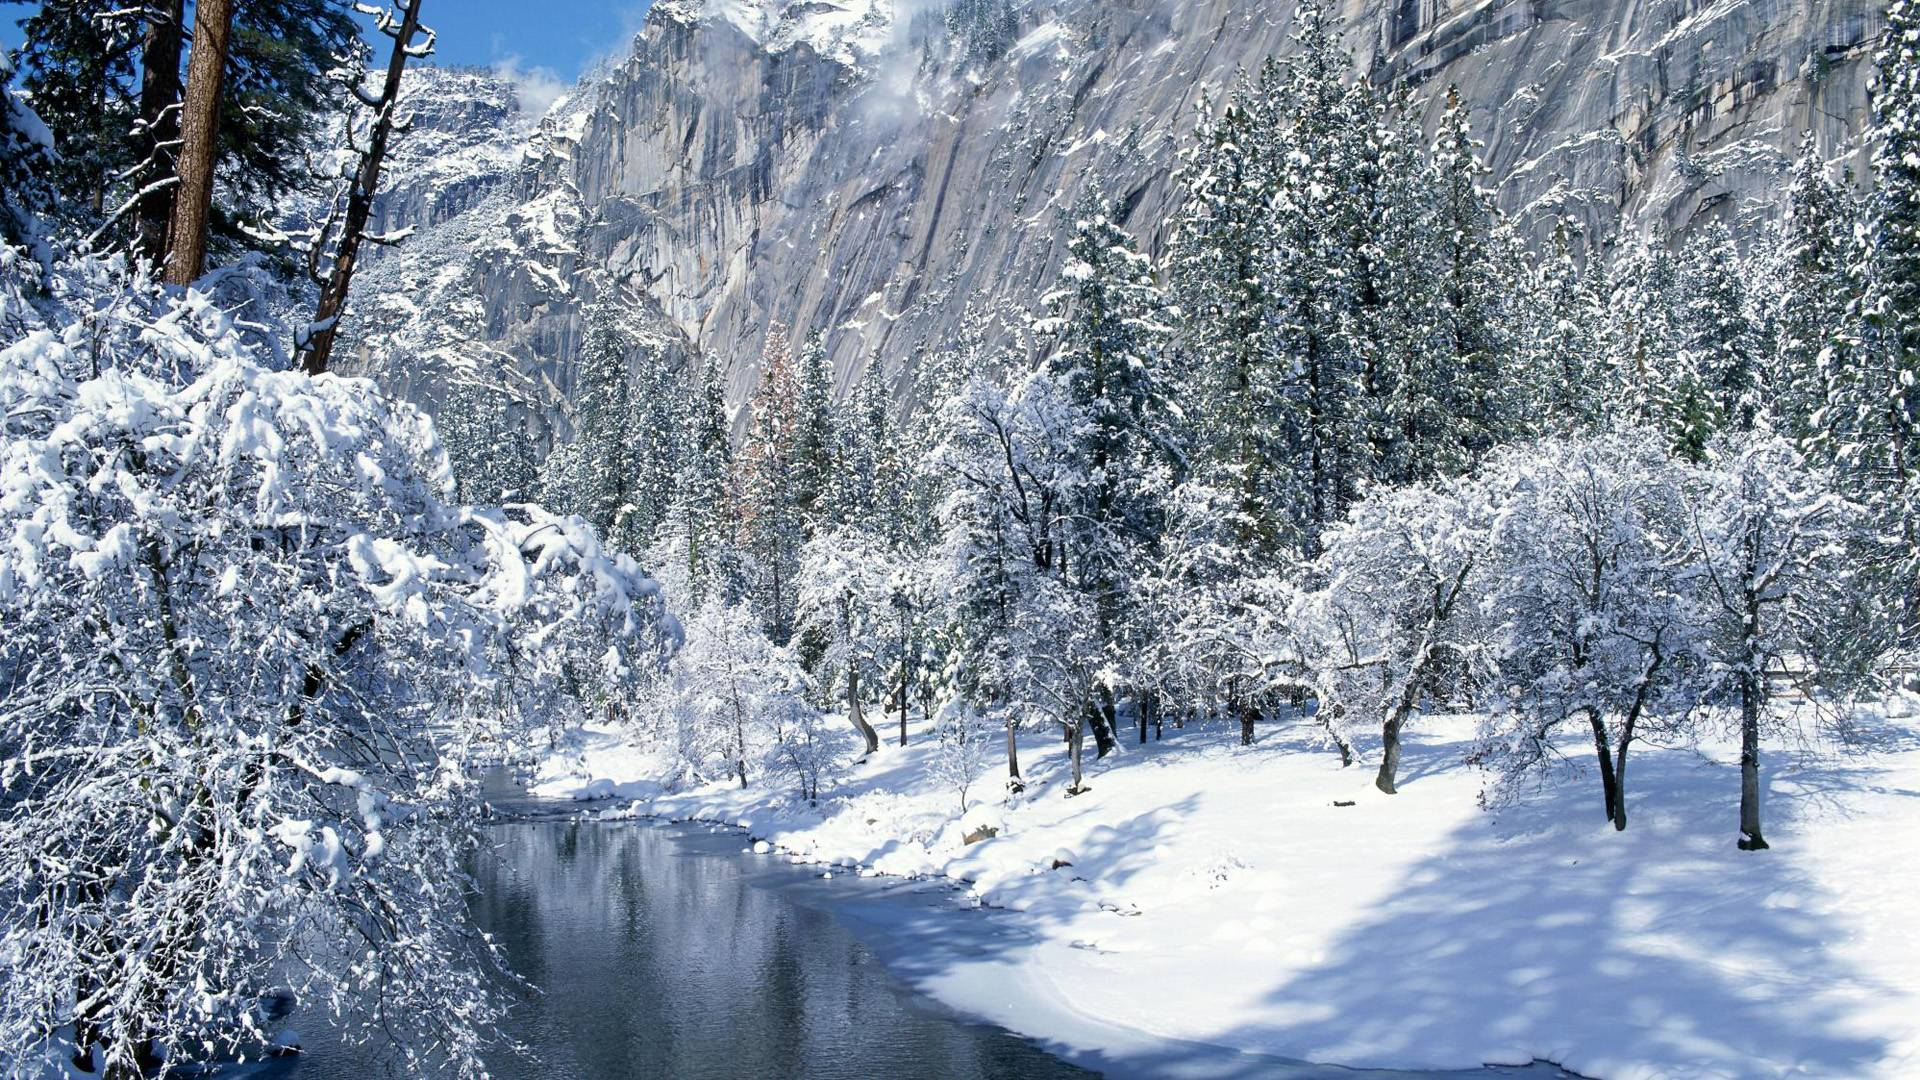 Winter Wallpapers 1920x1080 Wallpaper Cave